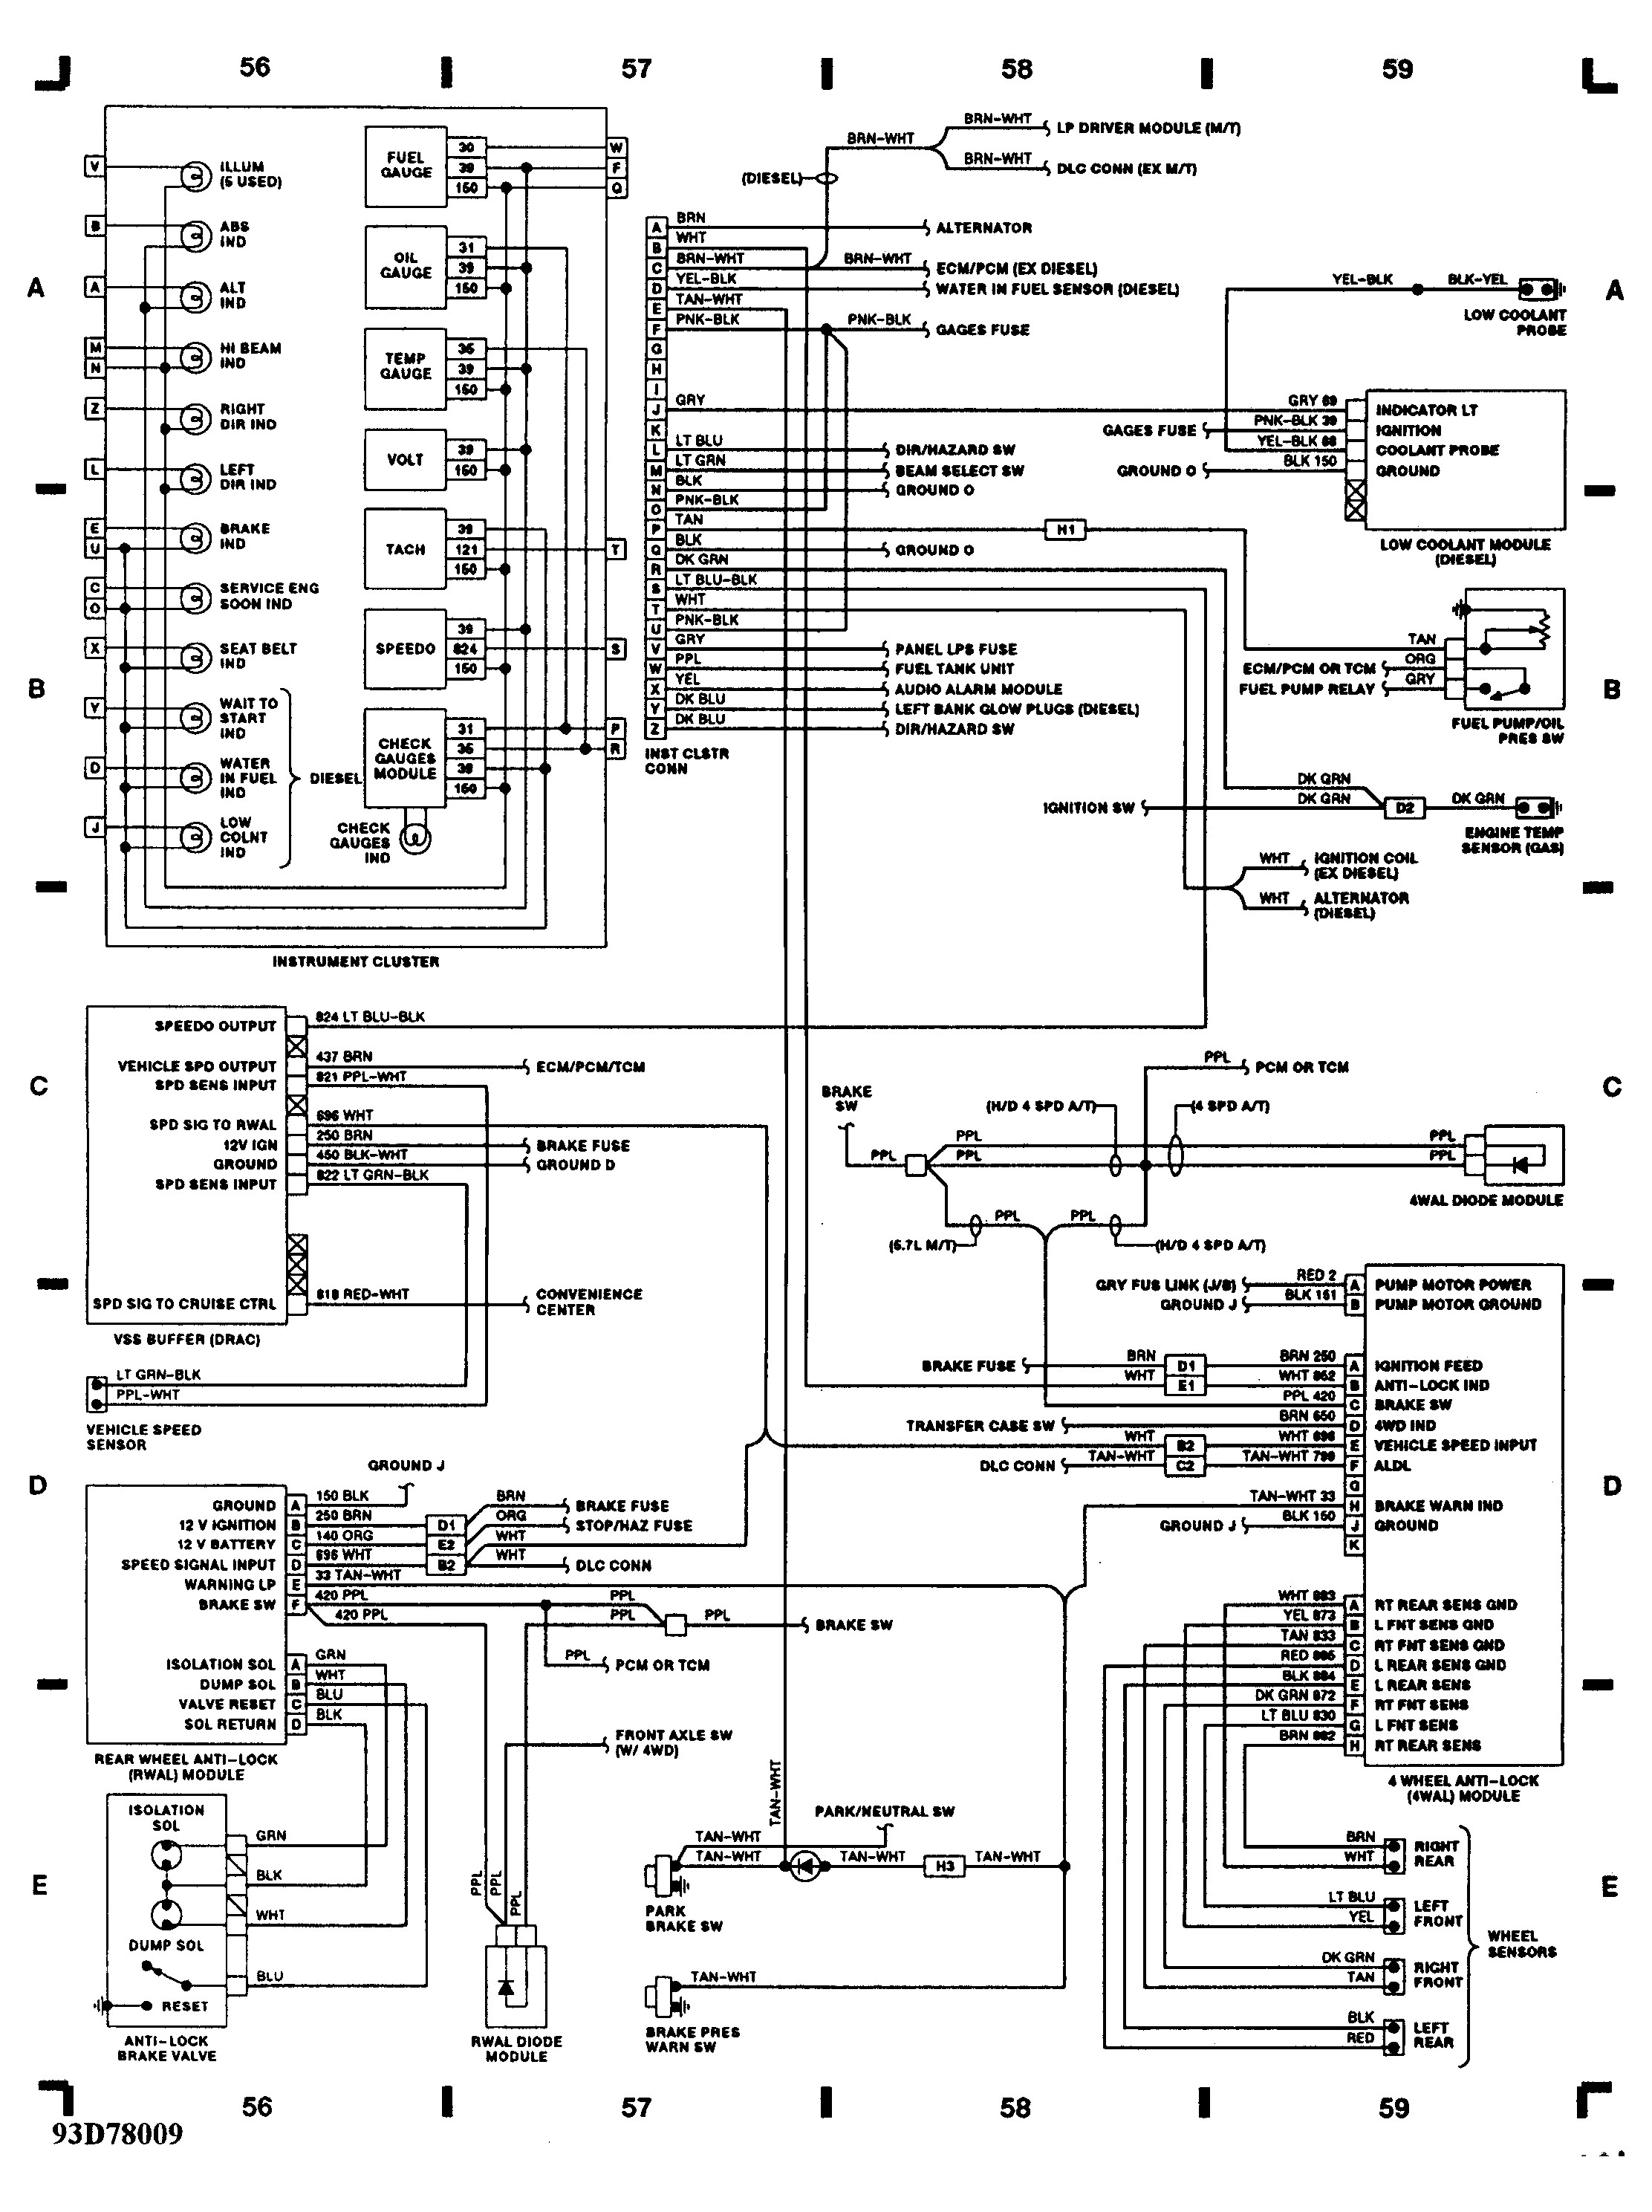 1982 Chevy Truck Wiring Diagram | Free Wiring Diagram